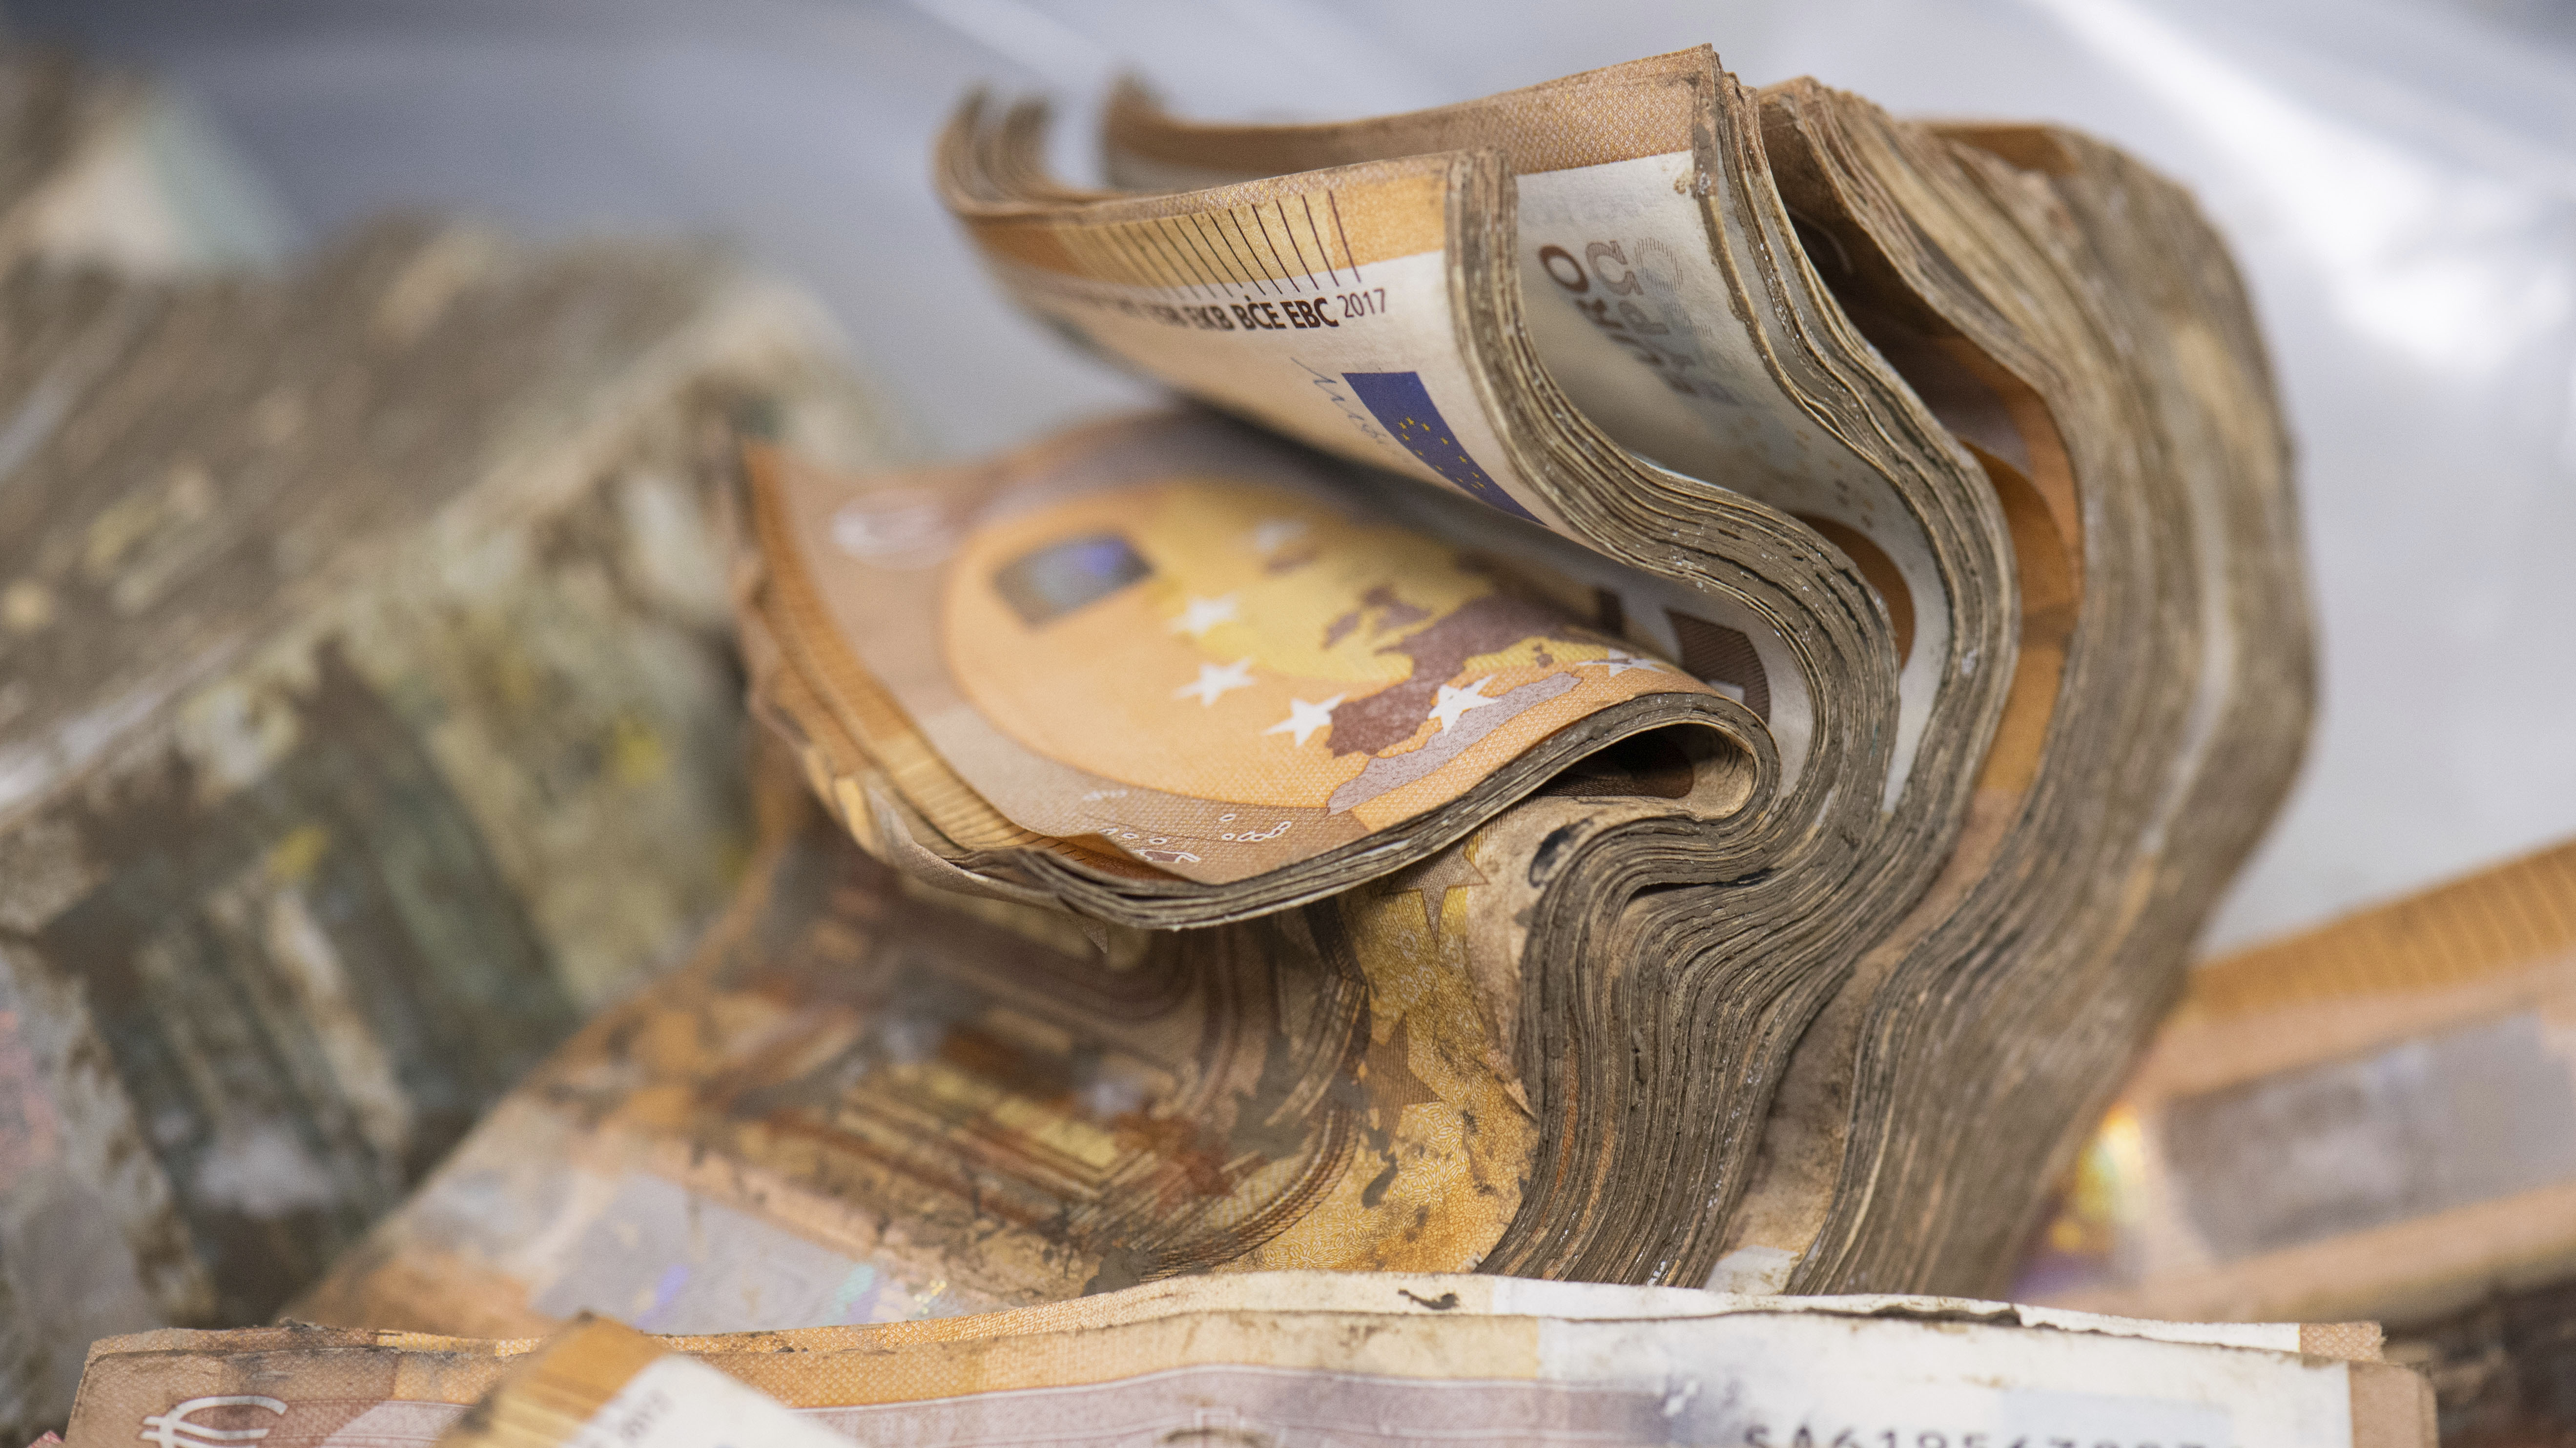 Soaked and mouldy euro banknotes are waiting to be dried at the Bundesbank in Mainz, Germany.